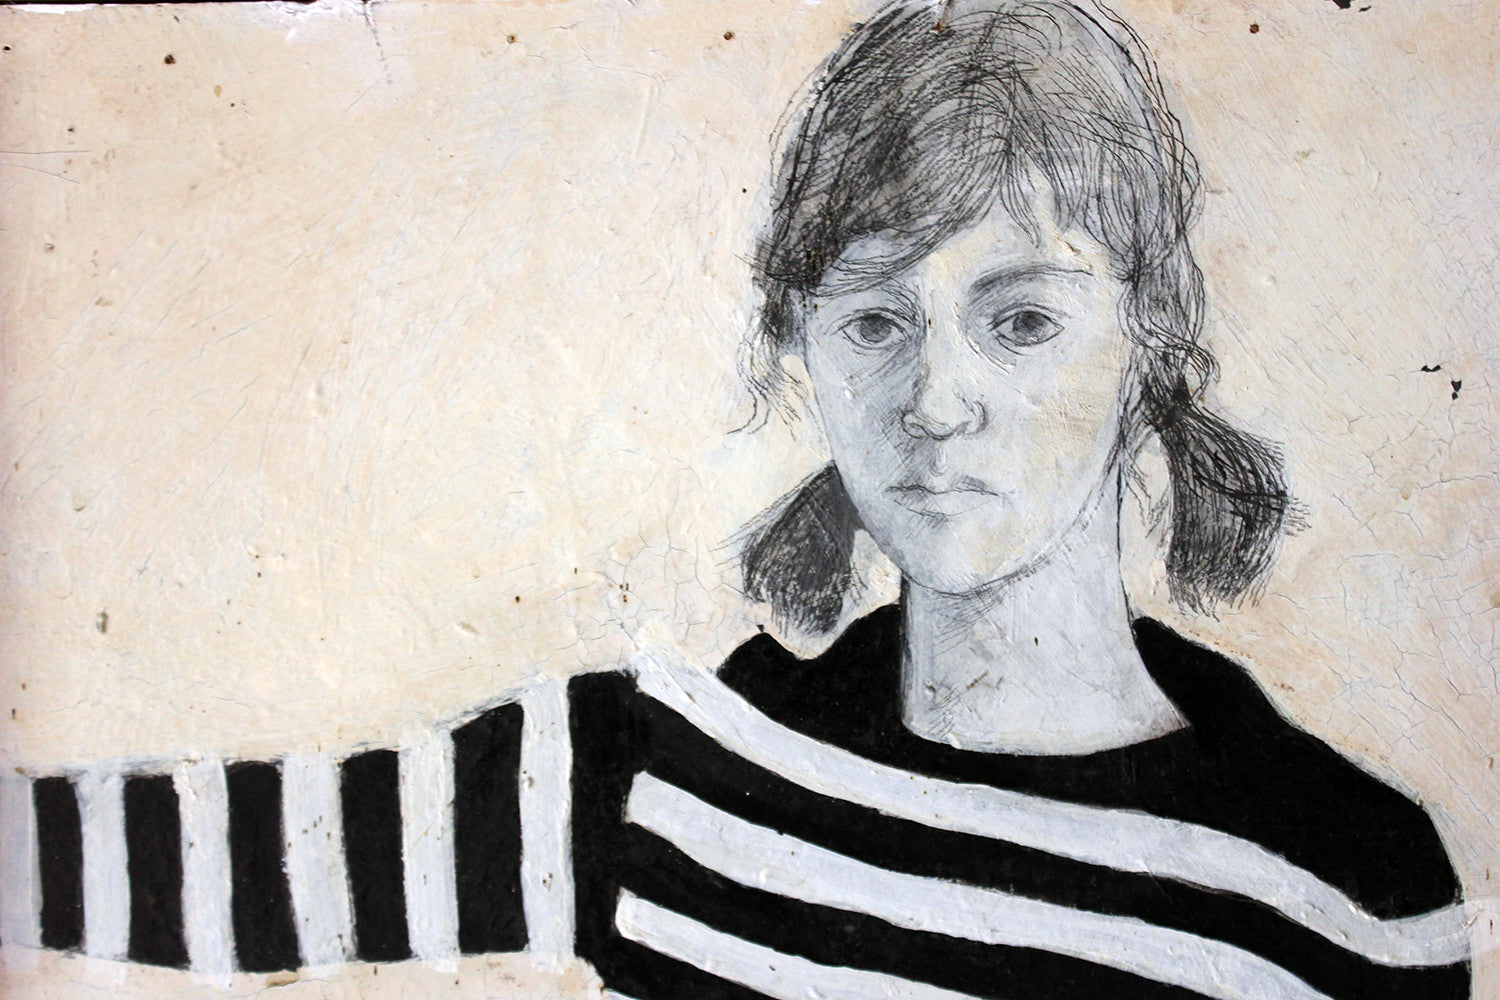 Patricia Algar (1939-2013); A Fabulous Full Length Mixed Media Self Portrait On Board, Dated to 1965